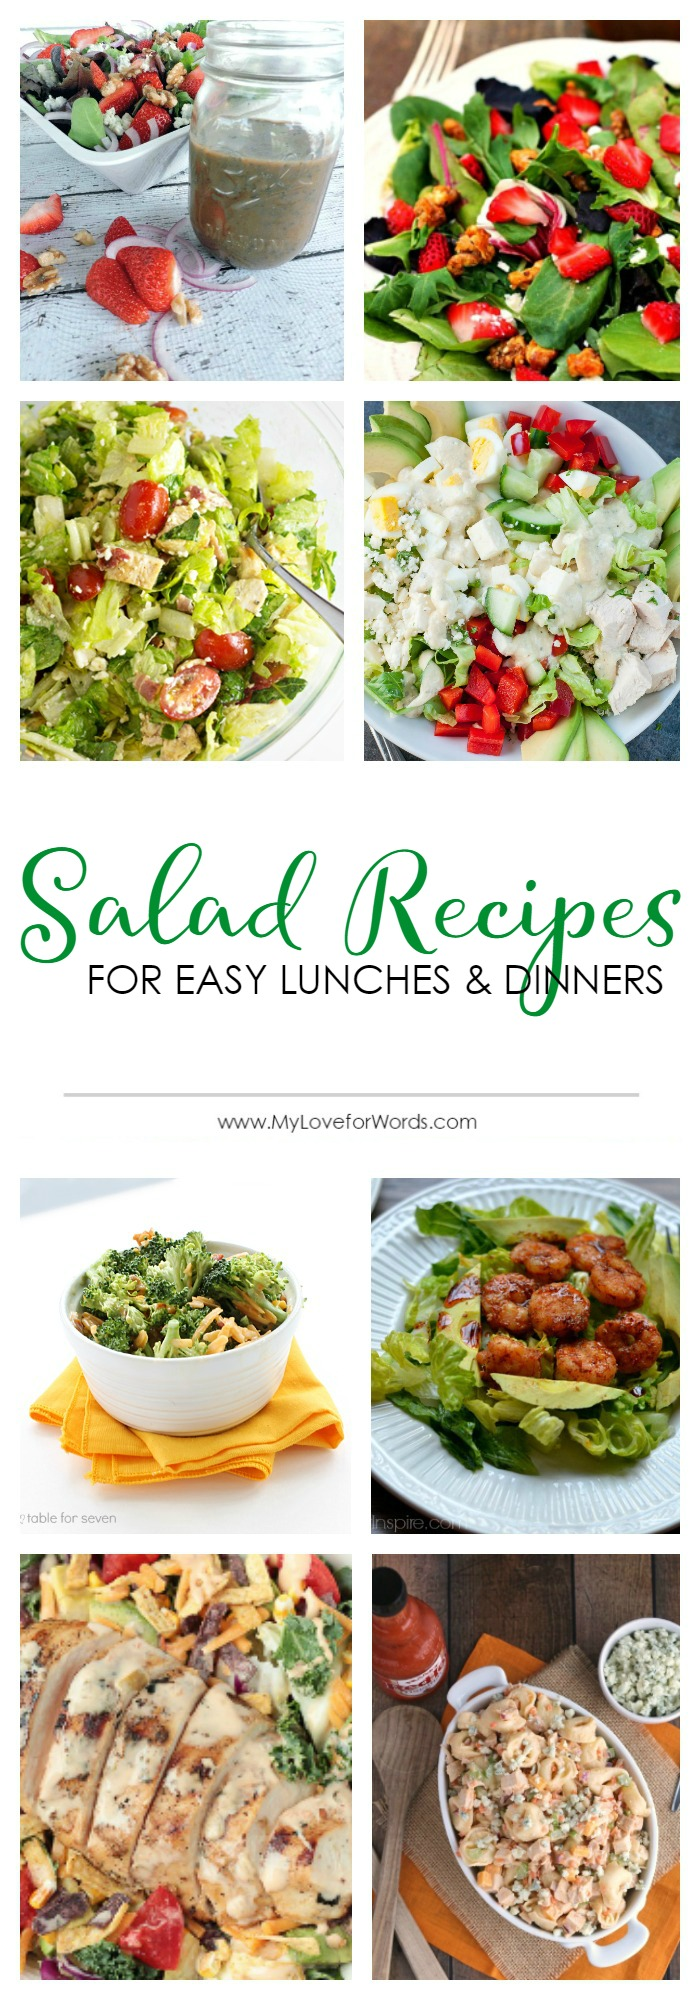 Salad recipes for easy lunches and dinners! The perfect solution for hot summer nights or when you're just too tired to cook. Also great for parties and bbq nights. Customize with your own ingredients like chicken, egg, pasta, fruit, or your favorite salad dressing. Healthy and delicious... it doesn't get better than that!